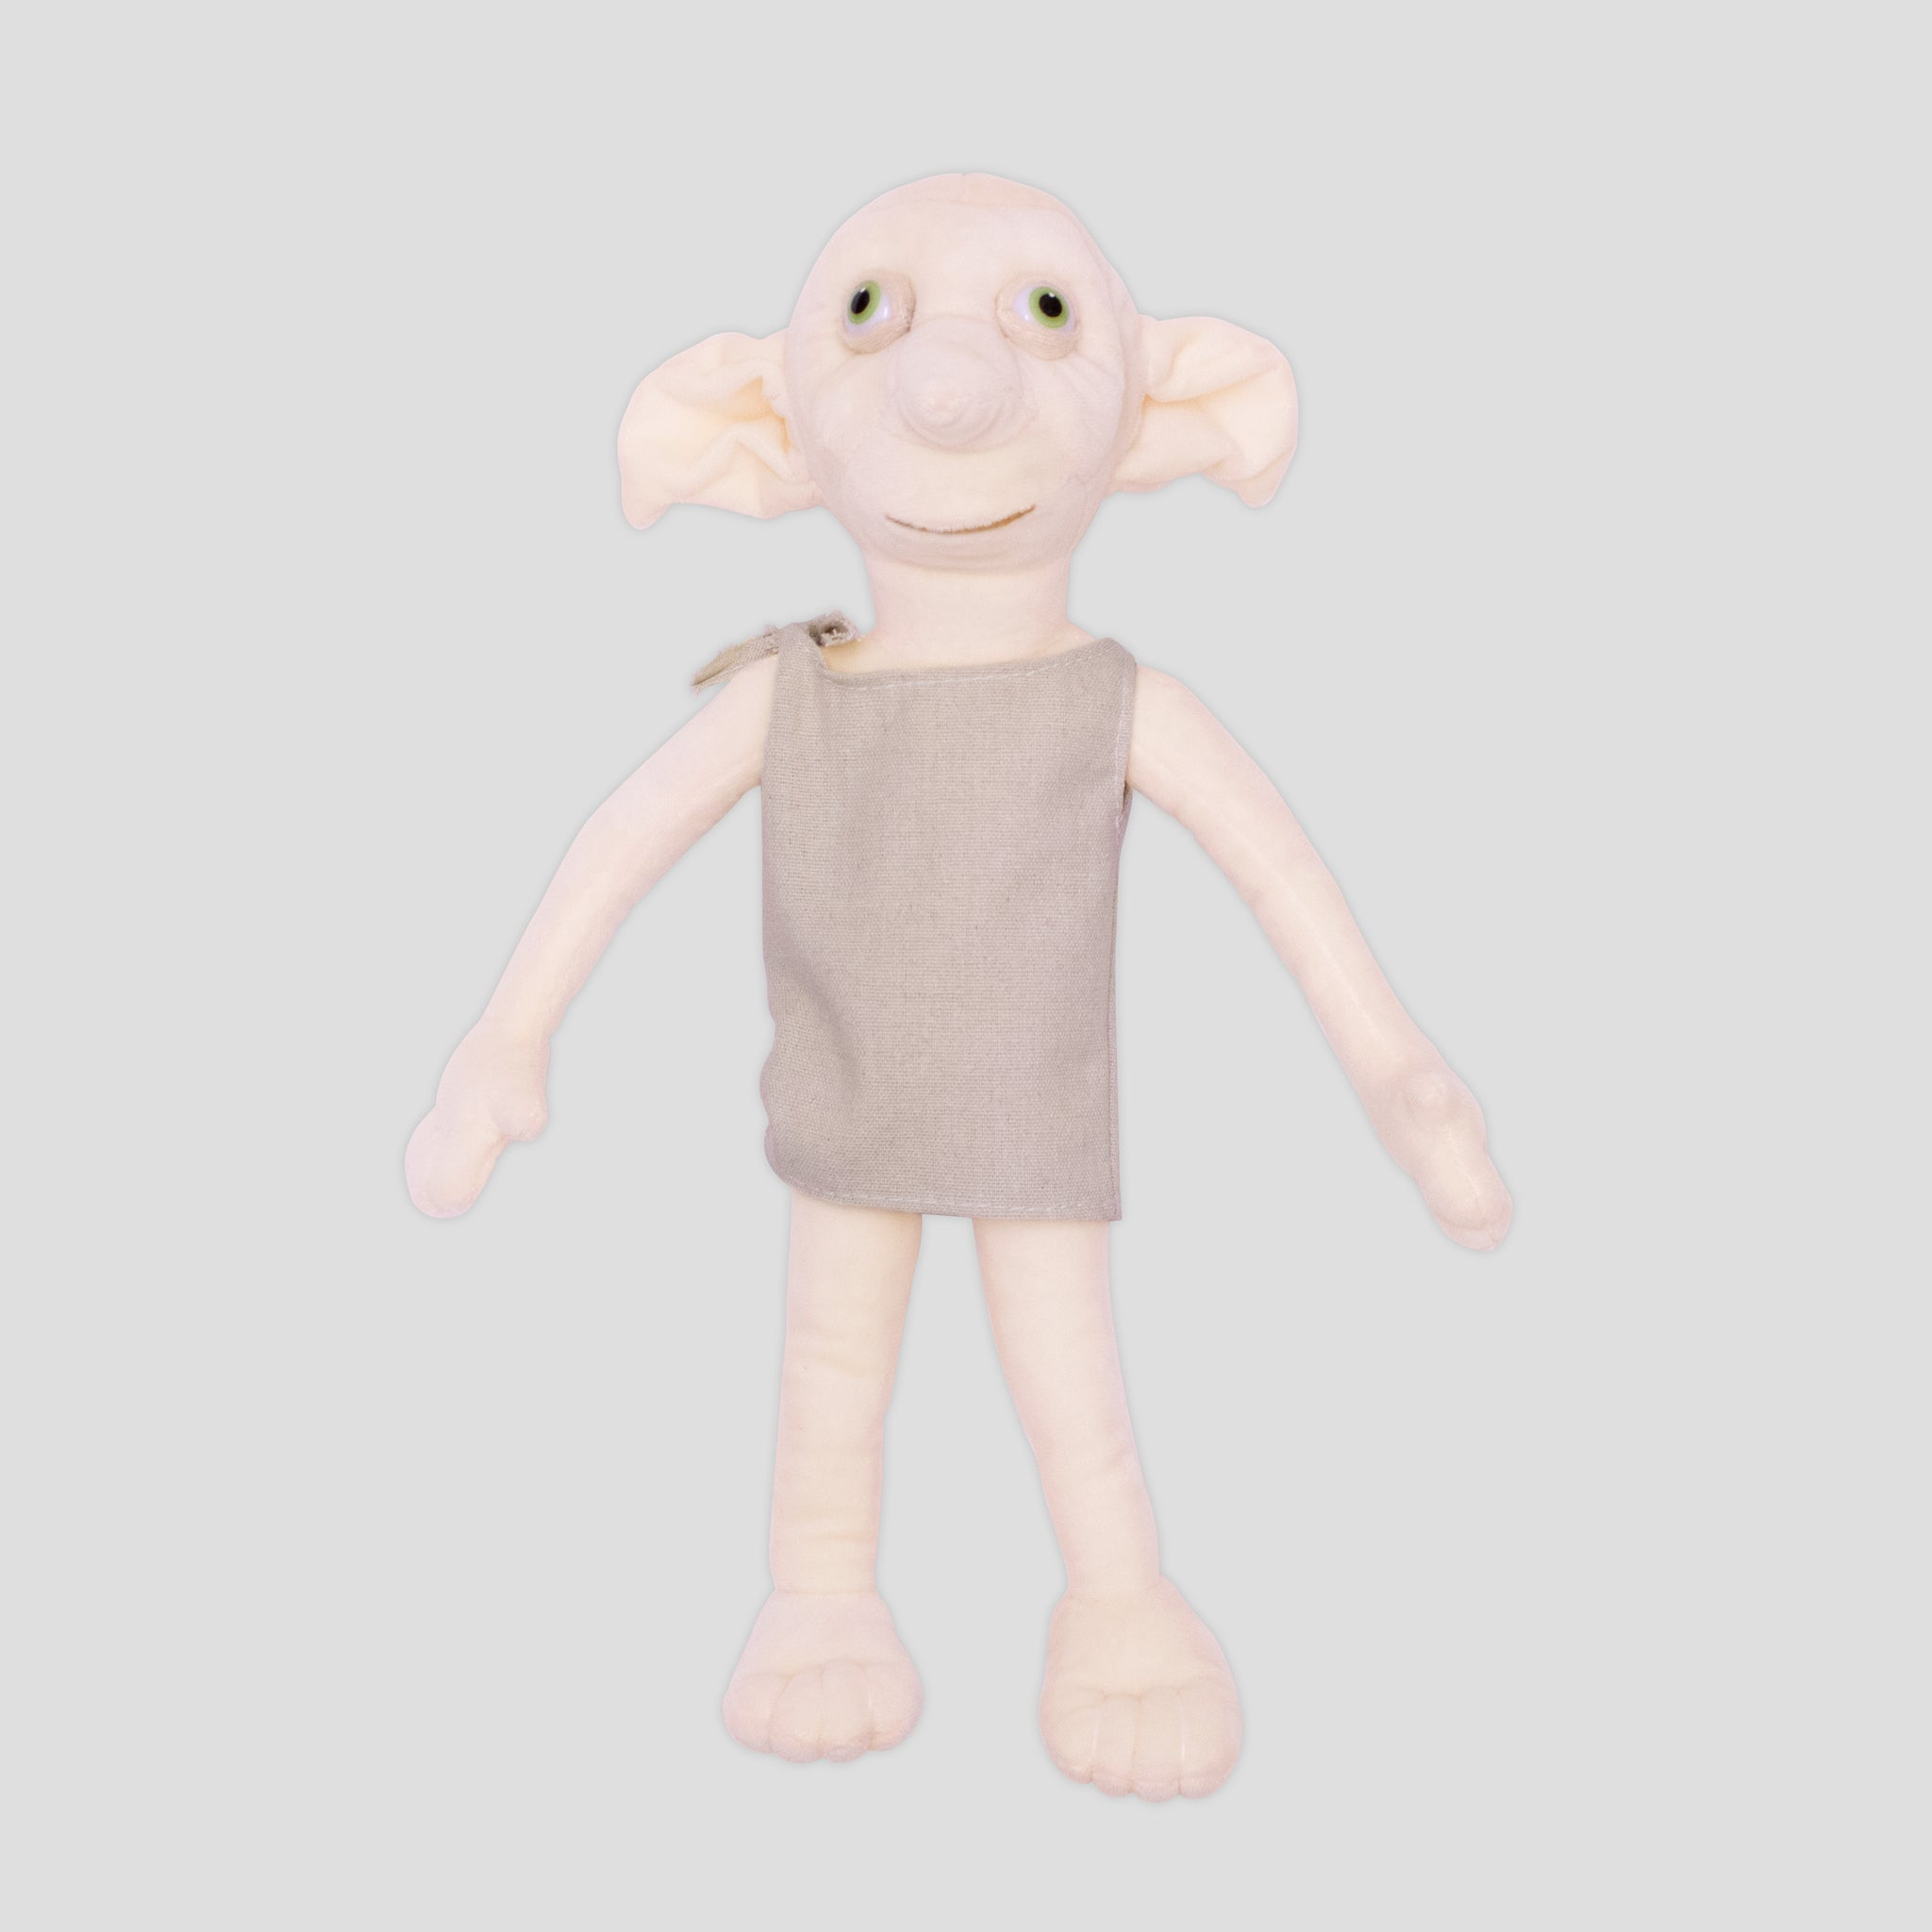 harry potter jk rowling book-a-million retail box wizarding world collectors box collectible exclusives hogwarts culturefly dobby plush doll house elf